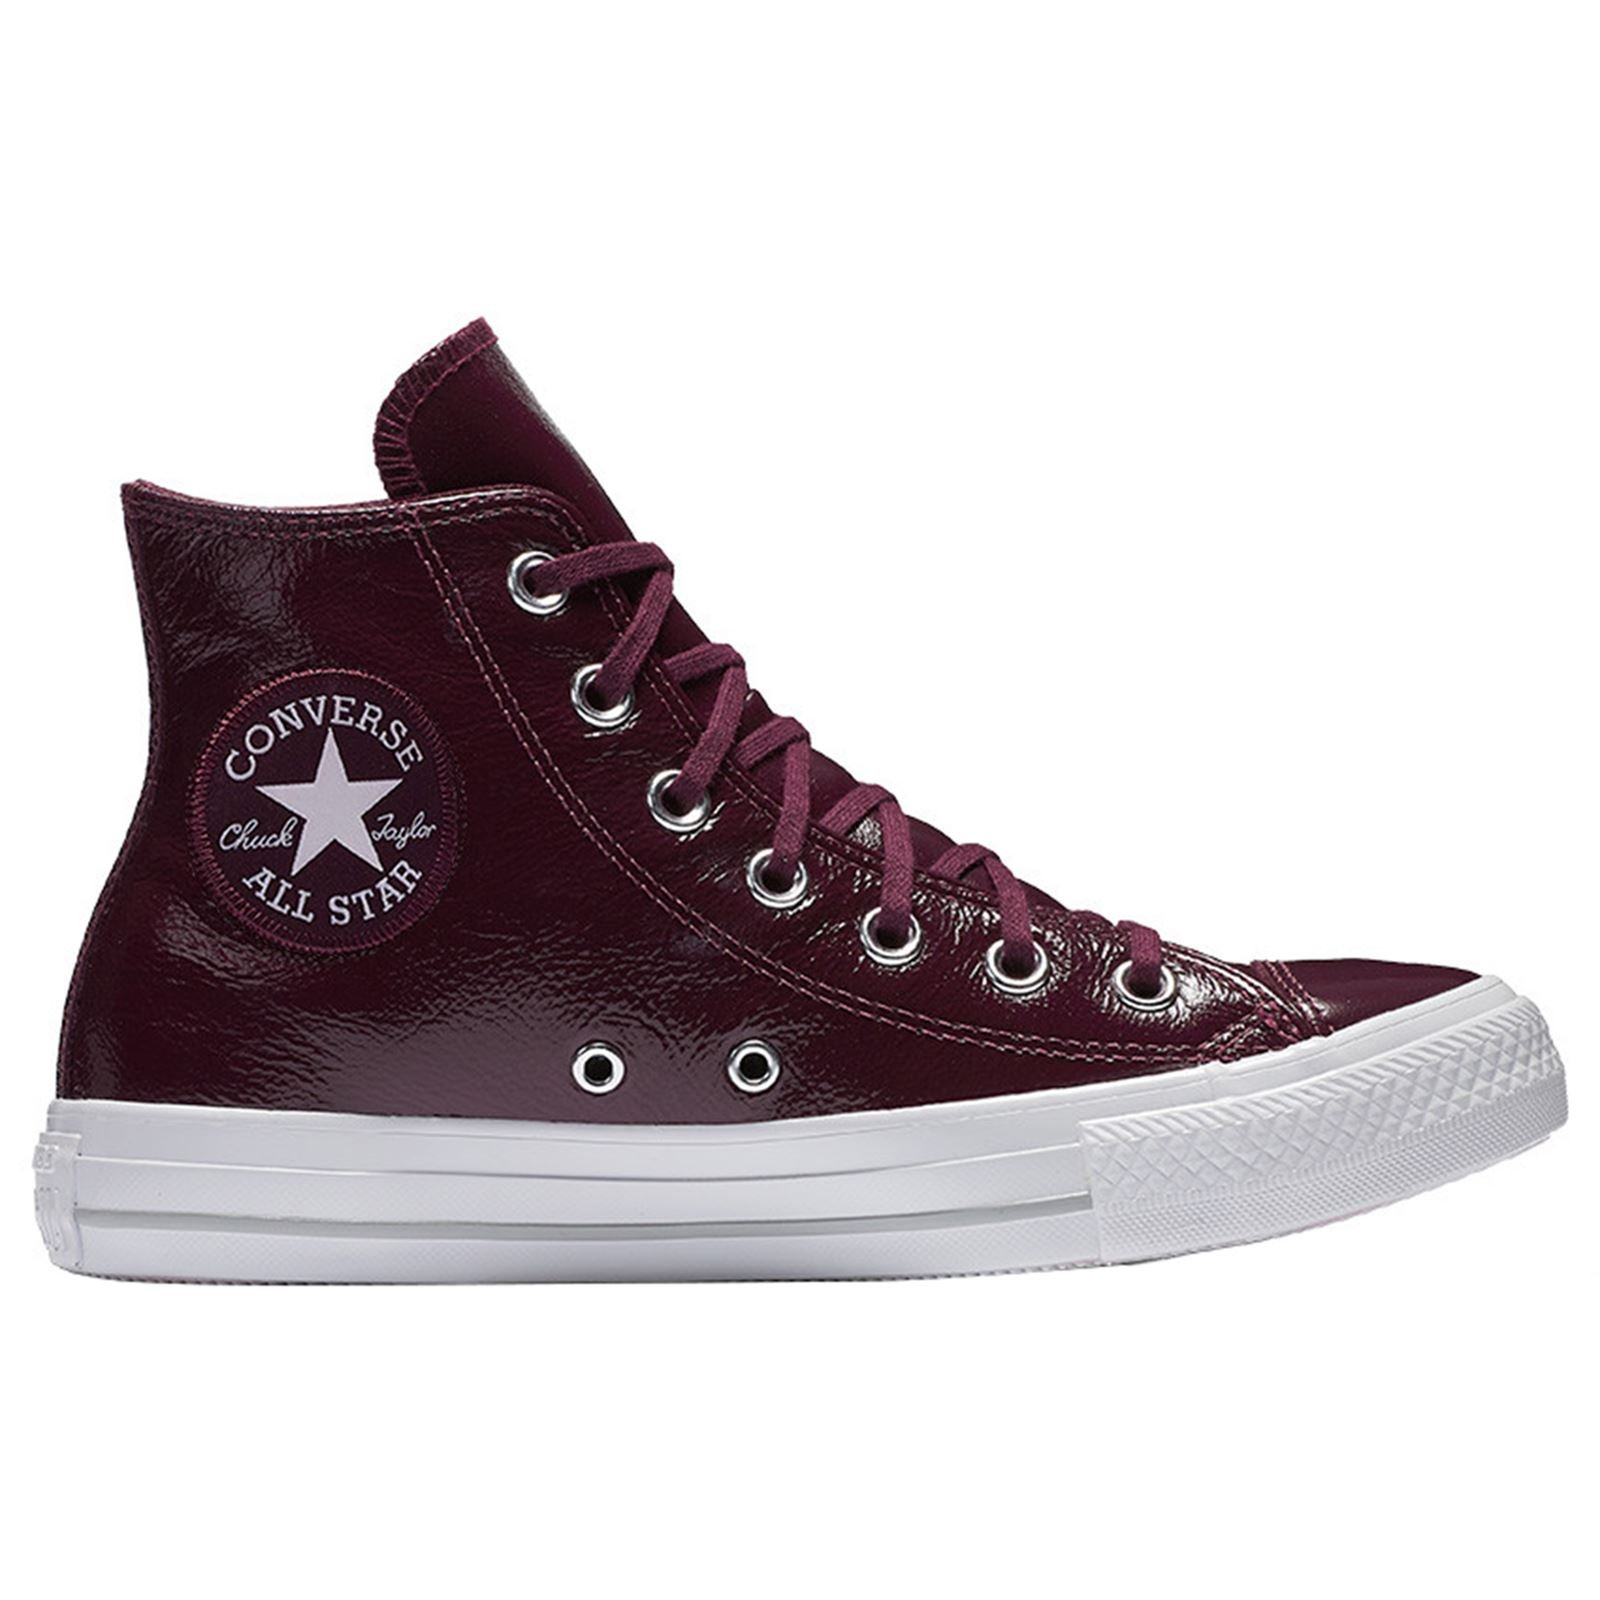 Converse Womens Chuck Taylor All Star Hi Dark Sangria Leather Trainers 7.5 US